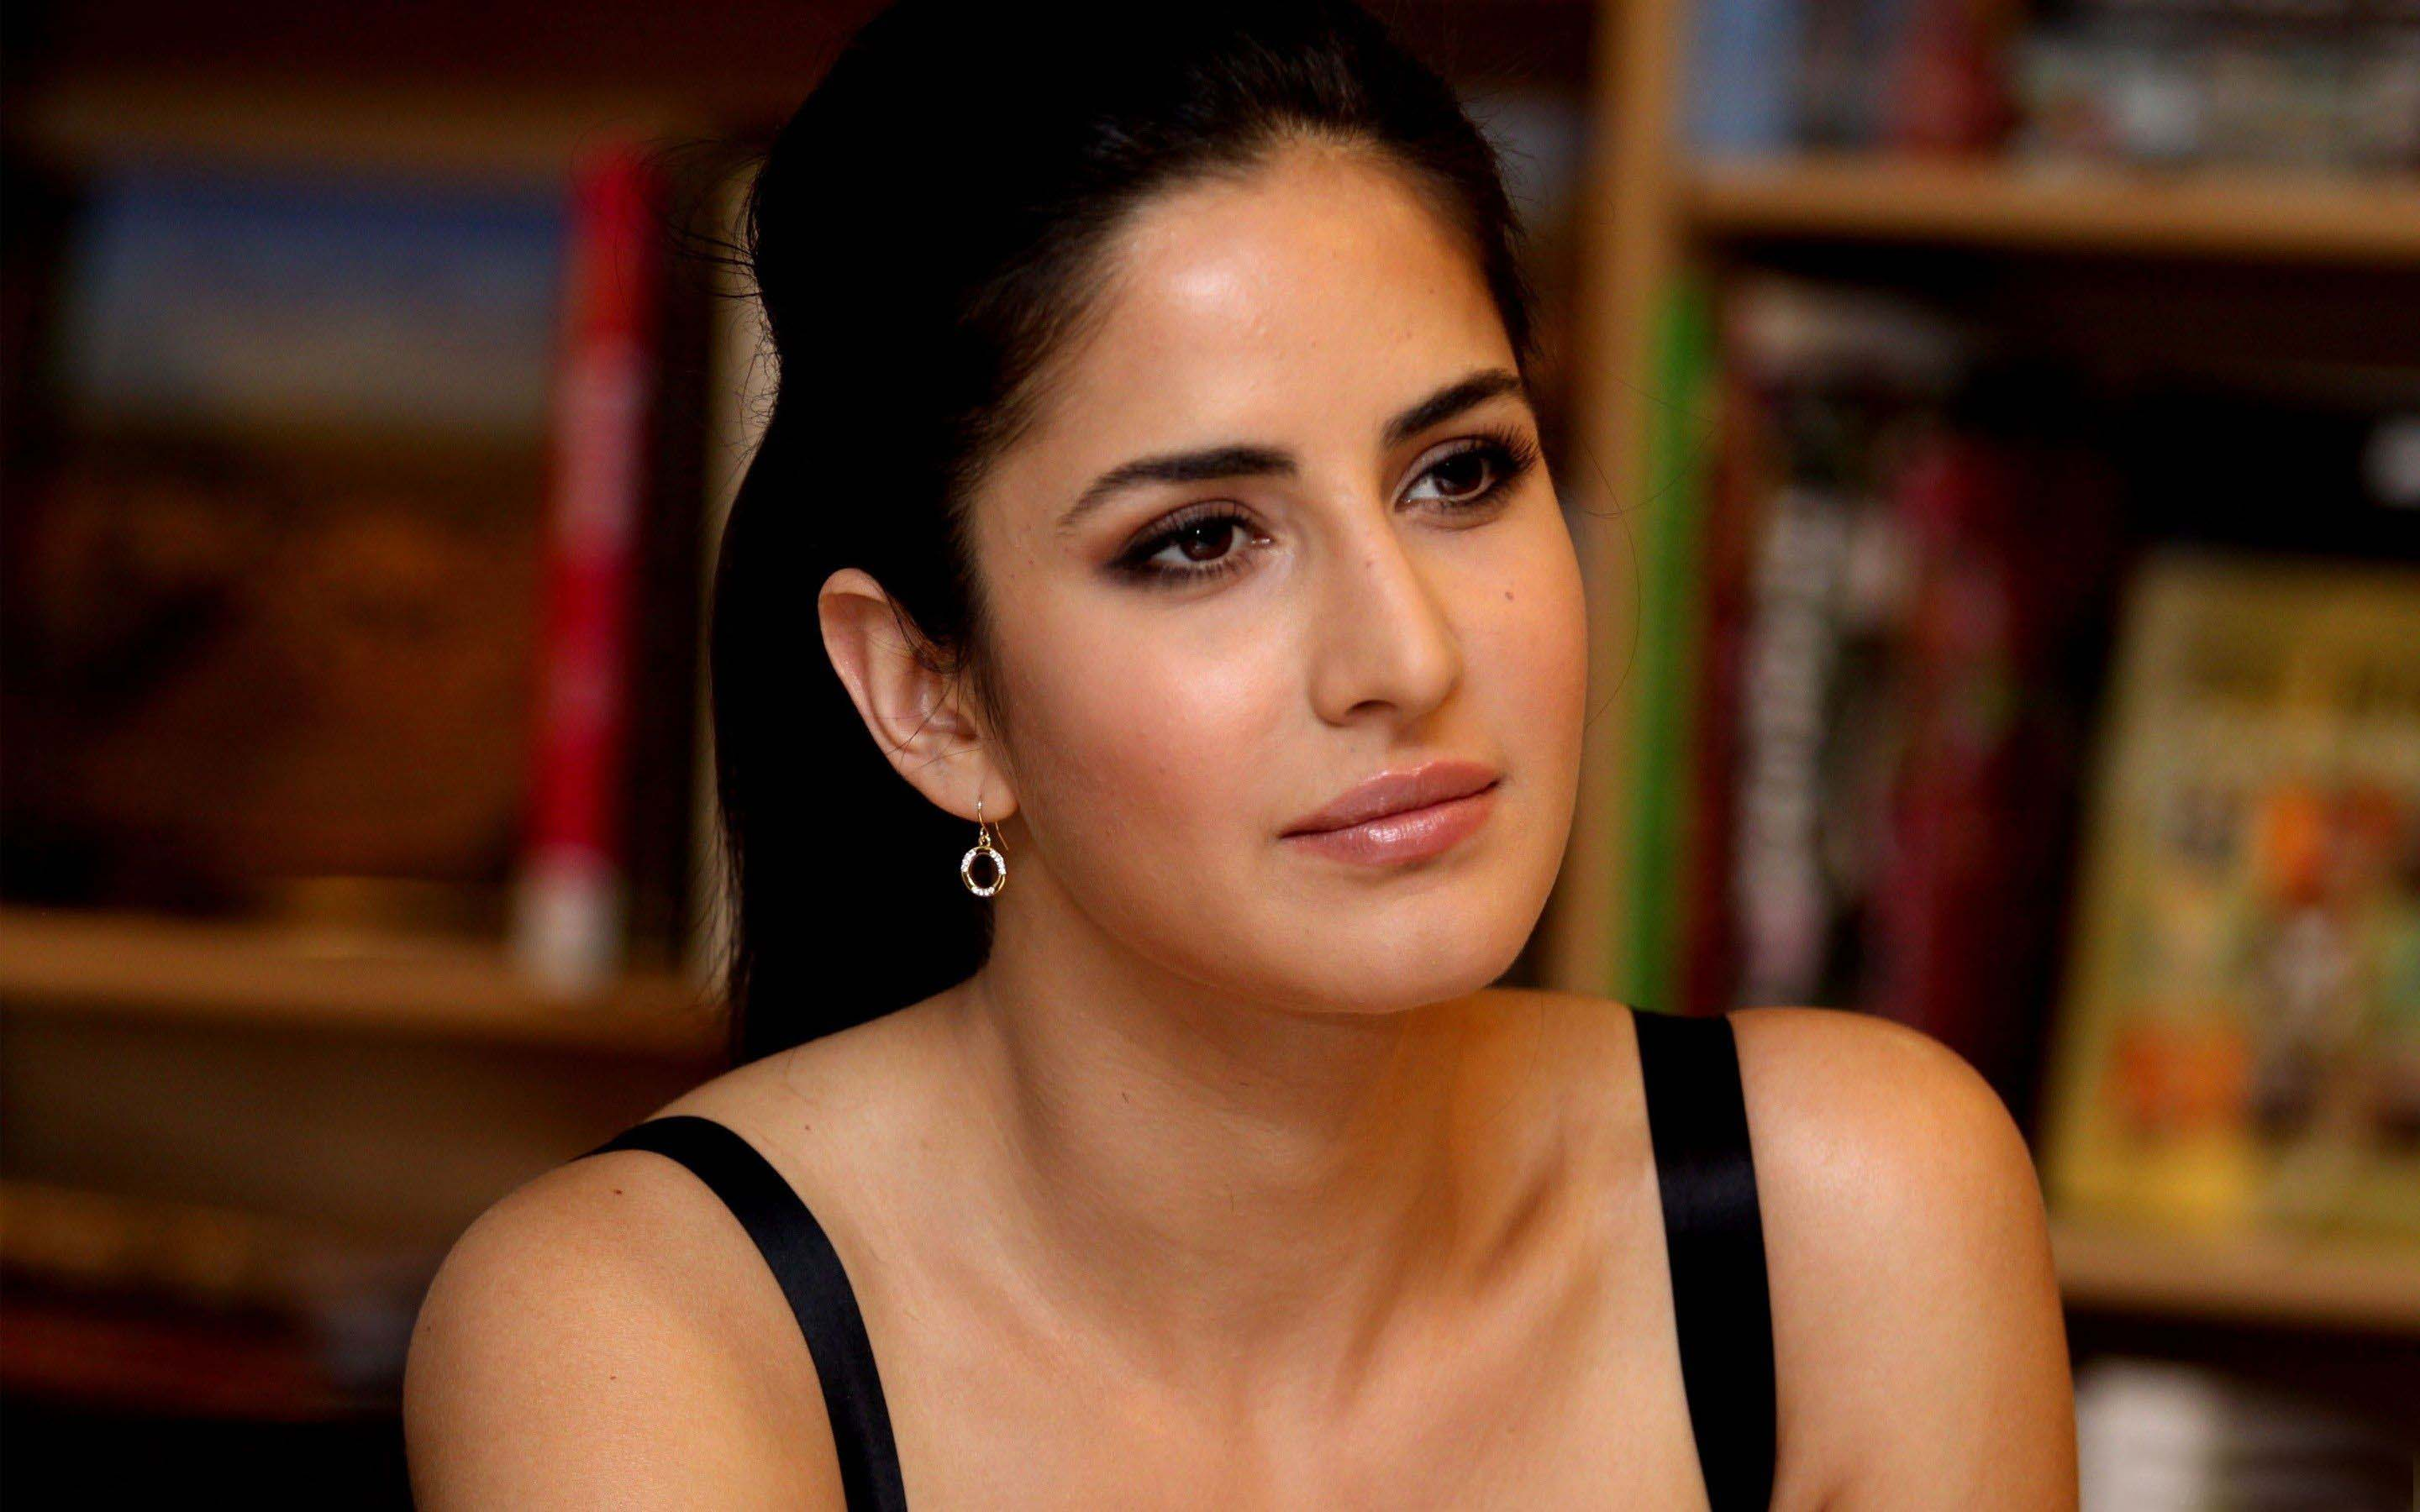 katrina kaif beautiful bollywood actress hd wallpaper 2540